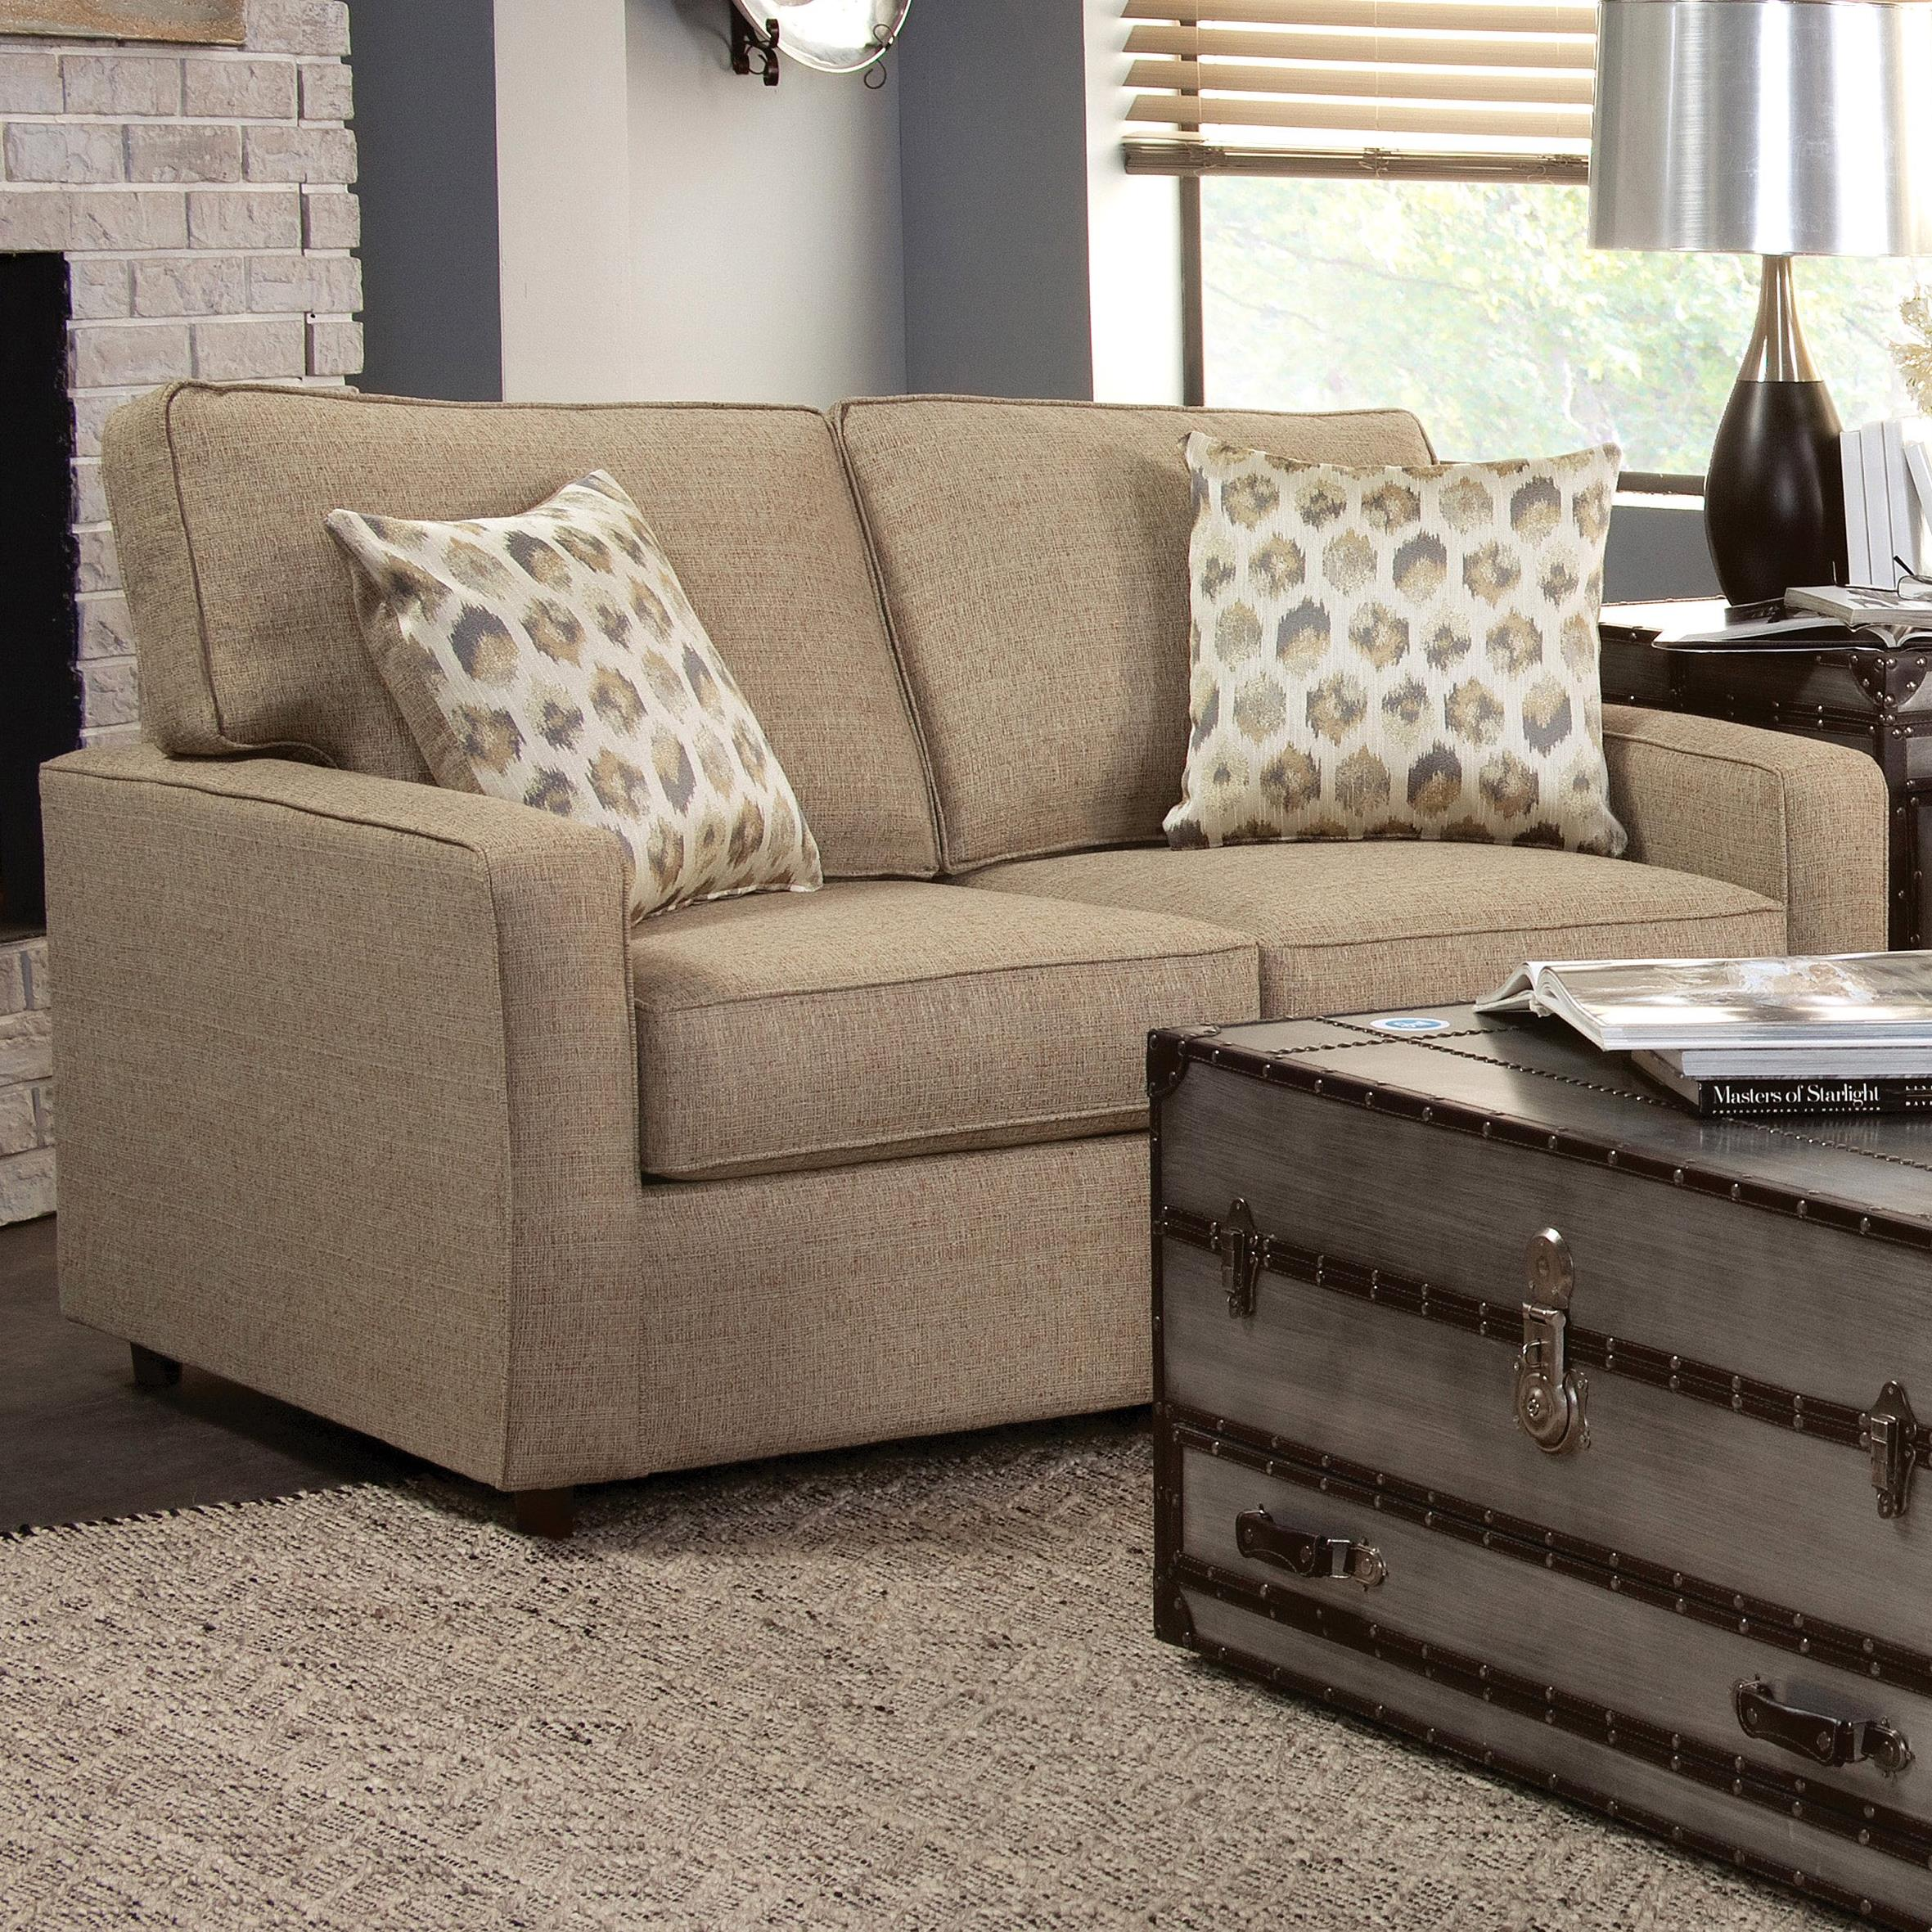 Belfort Essentials Eliot Loveseat - Item Number: 9200-20-Brown